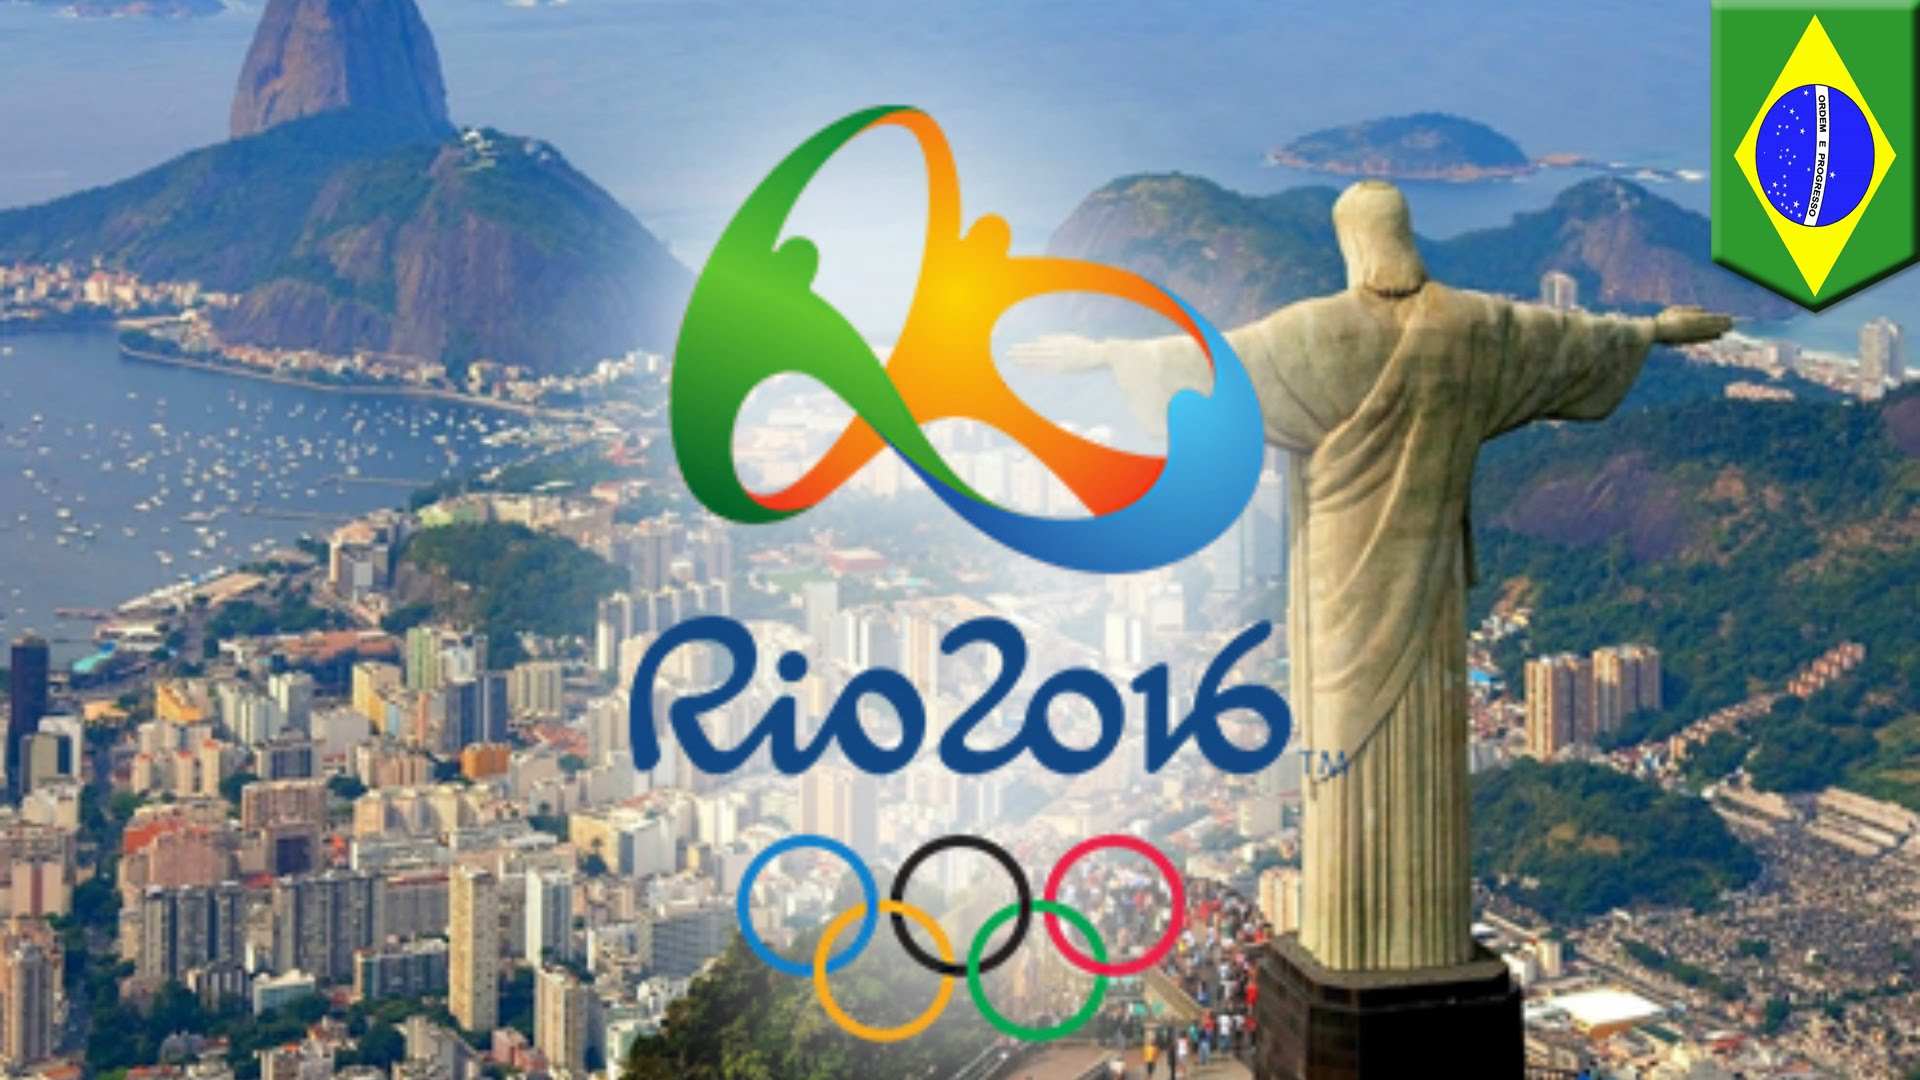 2016 Rio Olympic Games Might Be Remembered As the First IoT Olympics